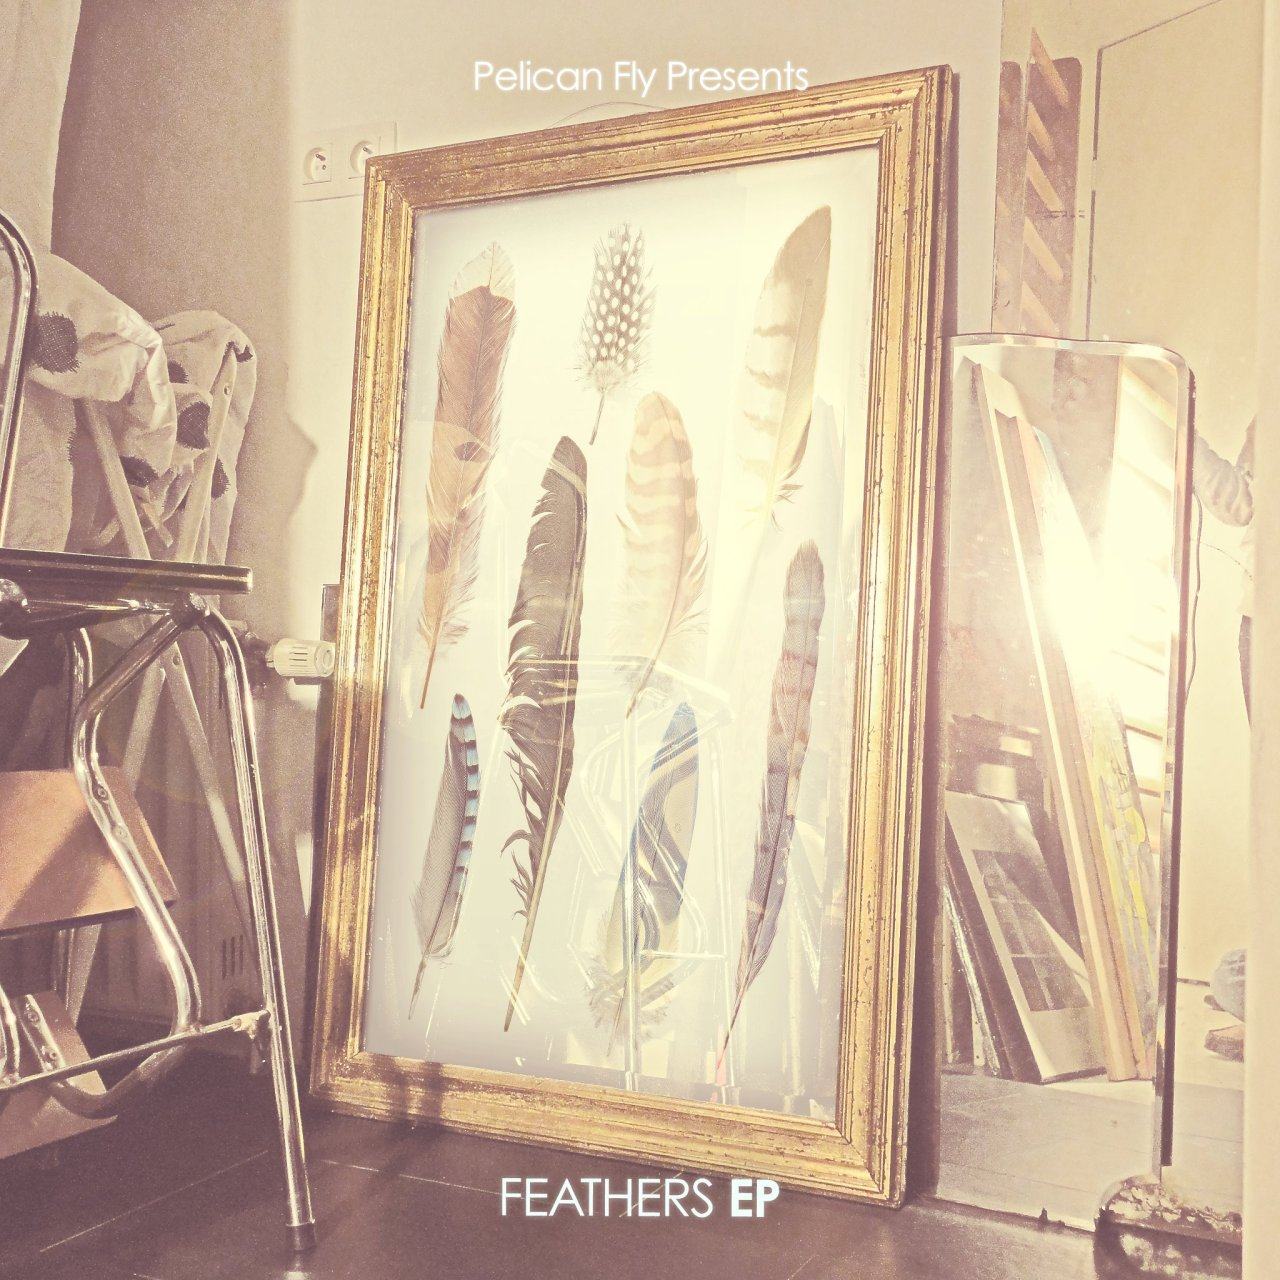 "REVIEW ➭➫➬➮ FEATHERS EP STARRING ➭➫➬➮ VARIOUS ARTISTS FROM PELICAN FLY REC.  Pelican Fly releases a long EP , a sort of introduction to his talents that are making a true revolution in electronic music.  Such a hype on Cashmere Cat in the latest few months is something incredible but justified in a way for the unique originality of the boy that merged field music, hip hop and rnb beats in a way that no one ever did before with feedbacks from all the electronic scene. The cat contribute to this compilation with the song ""Aurora"", more bassy / hudmo influenced than usual but it still amazes for the personality in the sample voice sound choice.  Lucid after the ""Transet"" madness, give us ""On & on"" one of the best tracks here, where hit-hats and basses make their own fight in a liquid land. Sinjin Hawke made the song ""Prom nite"", a bass track with anchestral choirs, horns and strings, a miximal triumph that recall S-Type. Antoher great track is the one from @Richelle, ""Circular Motion"", with an oriental taste. Pelican fly confirms to be the most intresting emerging record label ! ✰ 9.0/10.0 ✰"